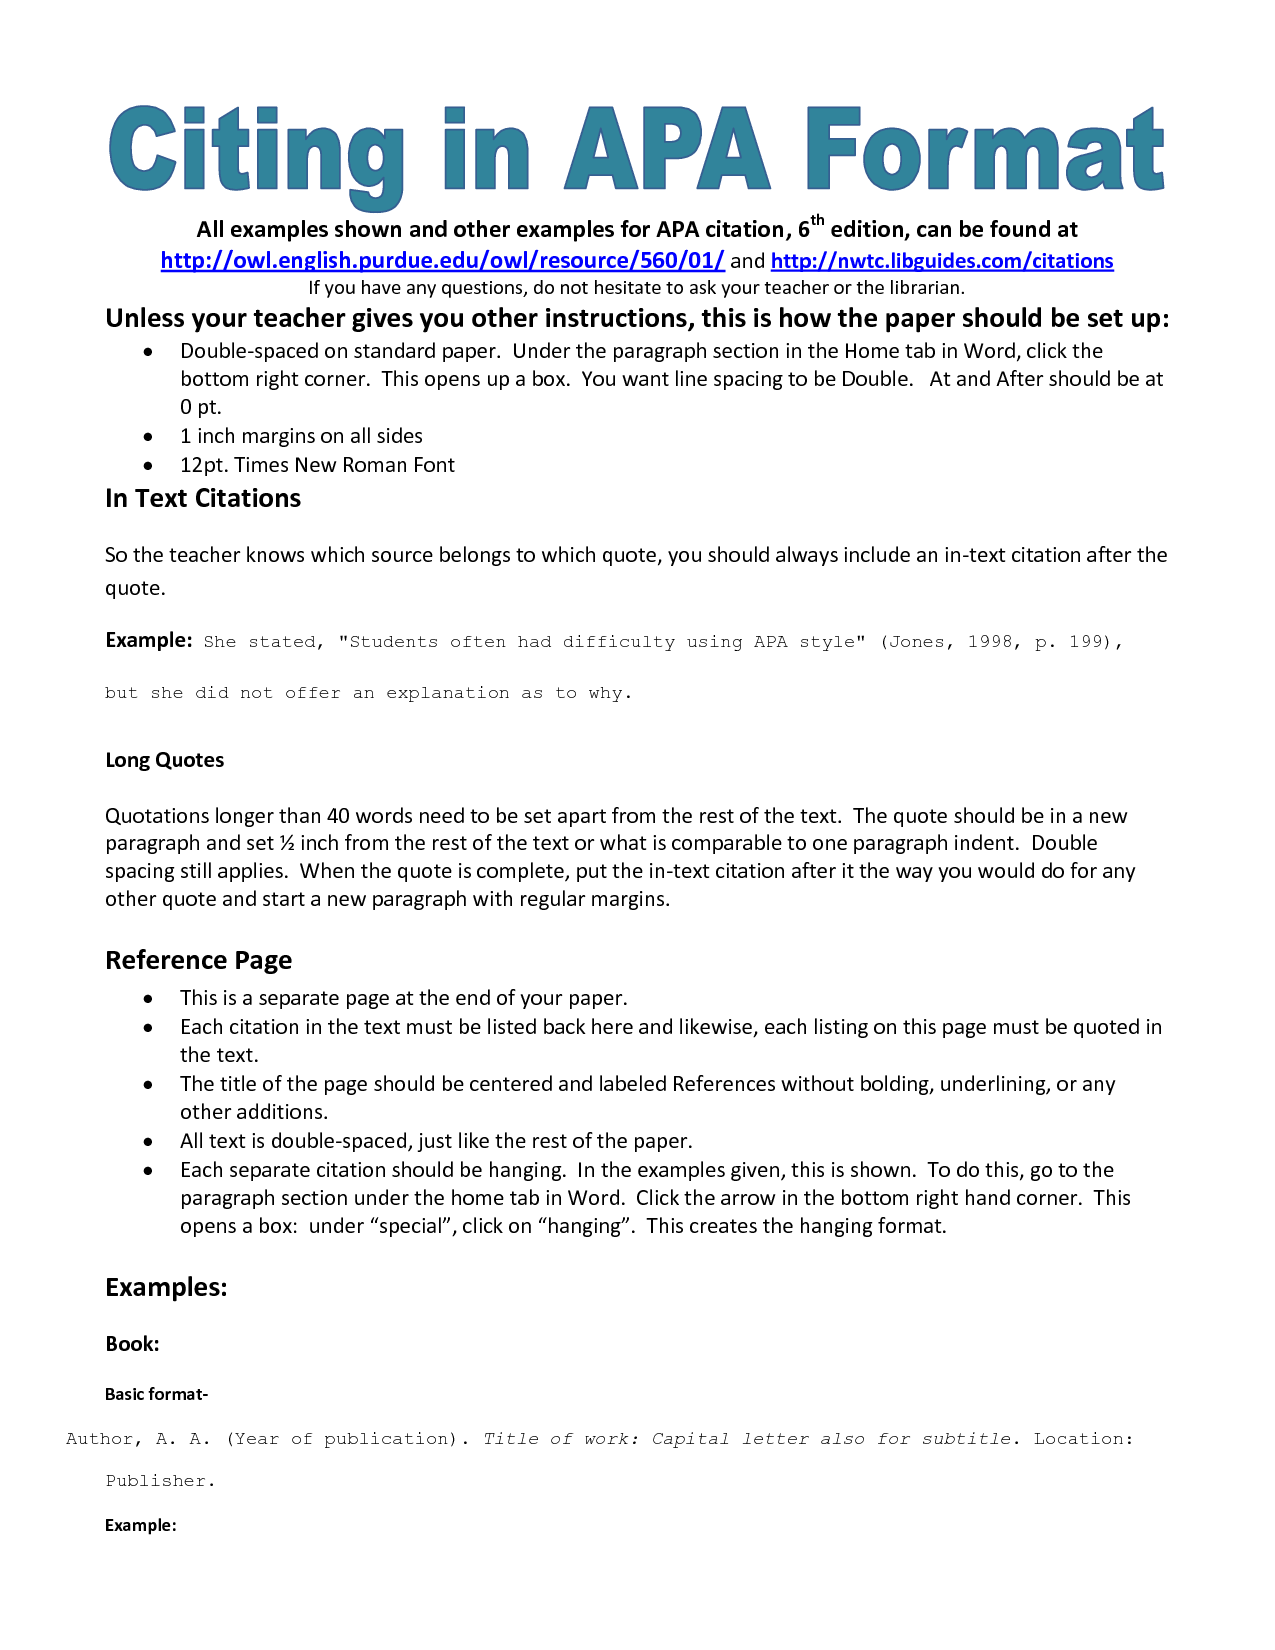 citing essay in anthology apa Argumentative essay template for college video smart words to use in english essays mba dissertation writing services uk login closing sentence for argumentative essay question gcse geography coursework evaluation bookstores argumentative essay template outline javascript social psychology research papers pdf html.